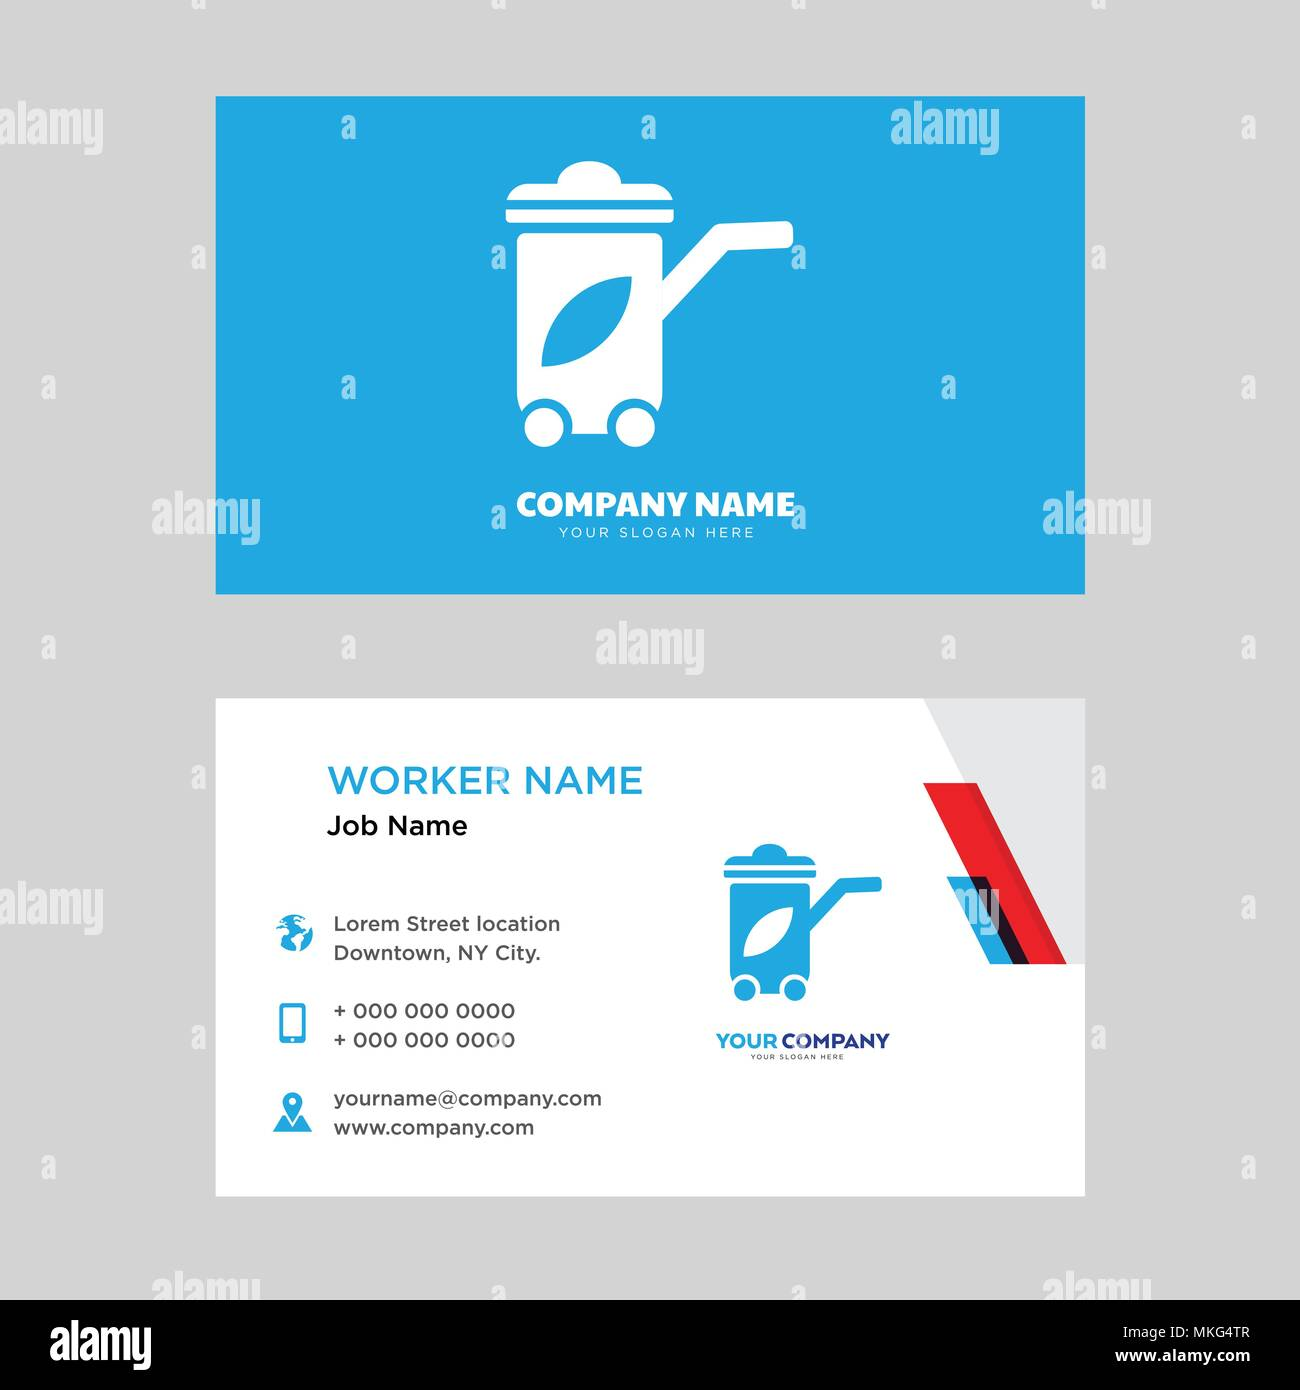 Recycling Bin Business Card Design Template Visiting For Your